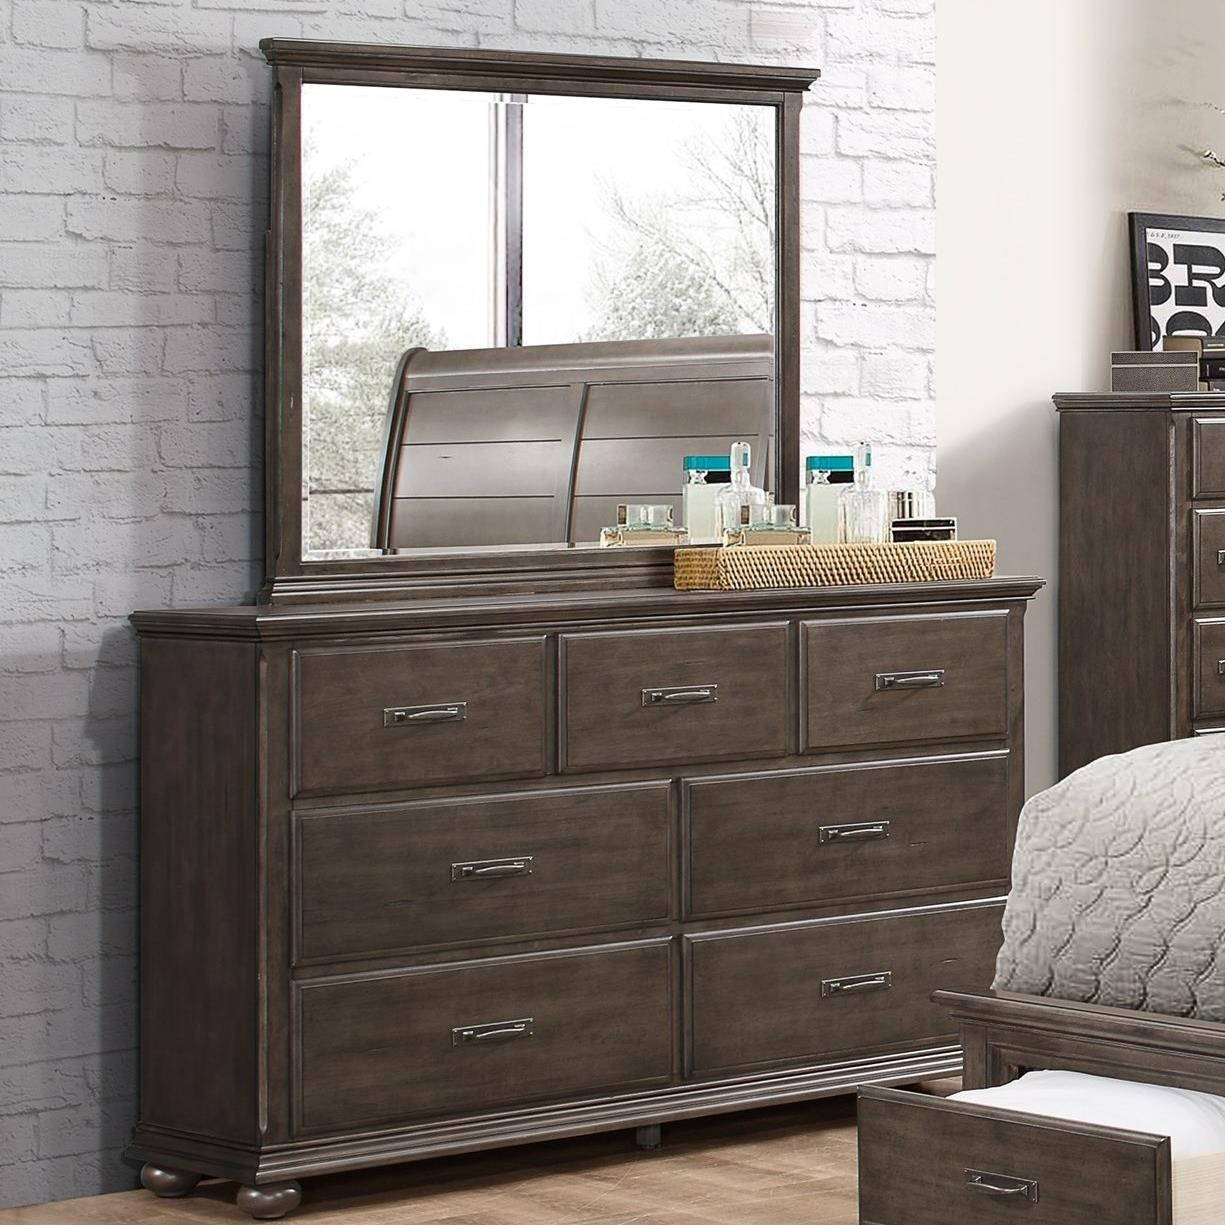 United Furniture Industries 1026 Dresser with Mirror - Item Number: 1026-10+20